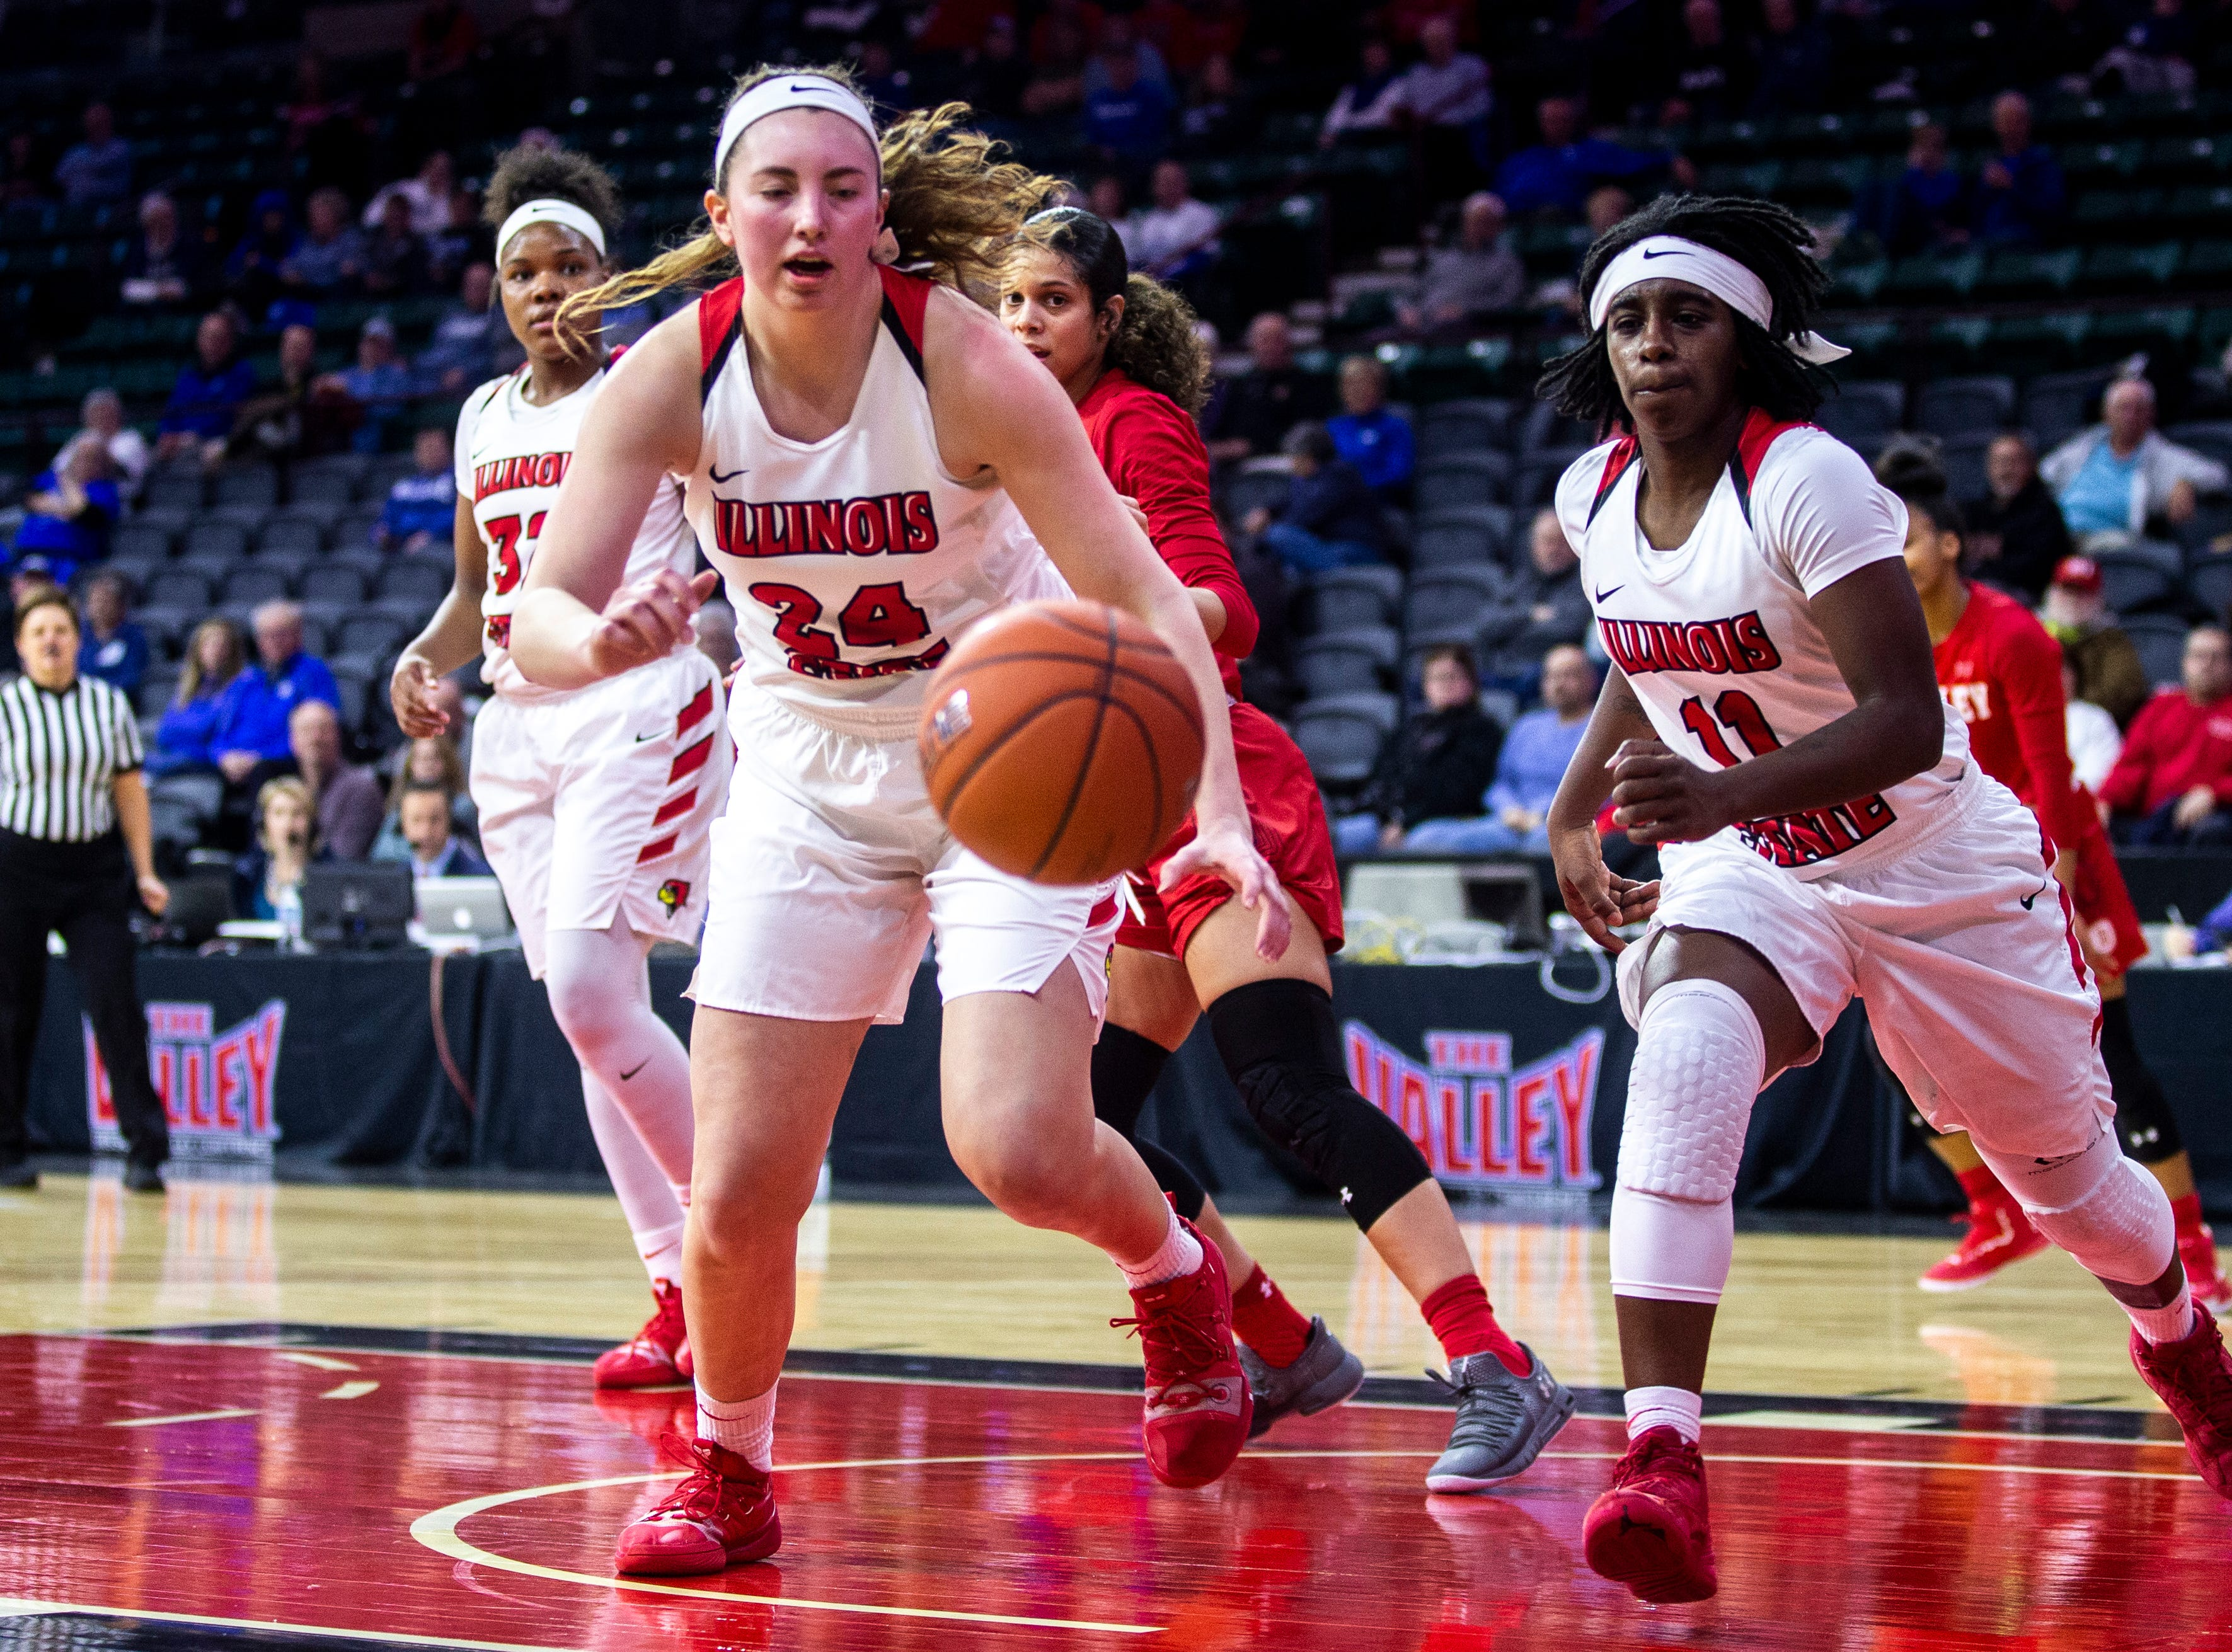 Illinois State forward Megan Talbot (24) runs for a loose ball during a NCAA Missouri Valley Conference women's basketball quarterfinal tournament game, Friday, March 15, 2019, at the TaxSlayer Center in Moline, Illinois.